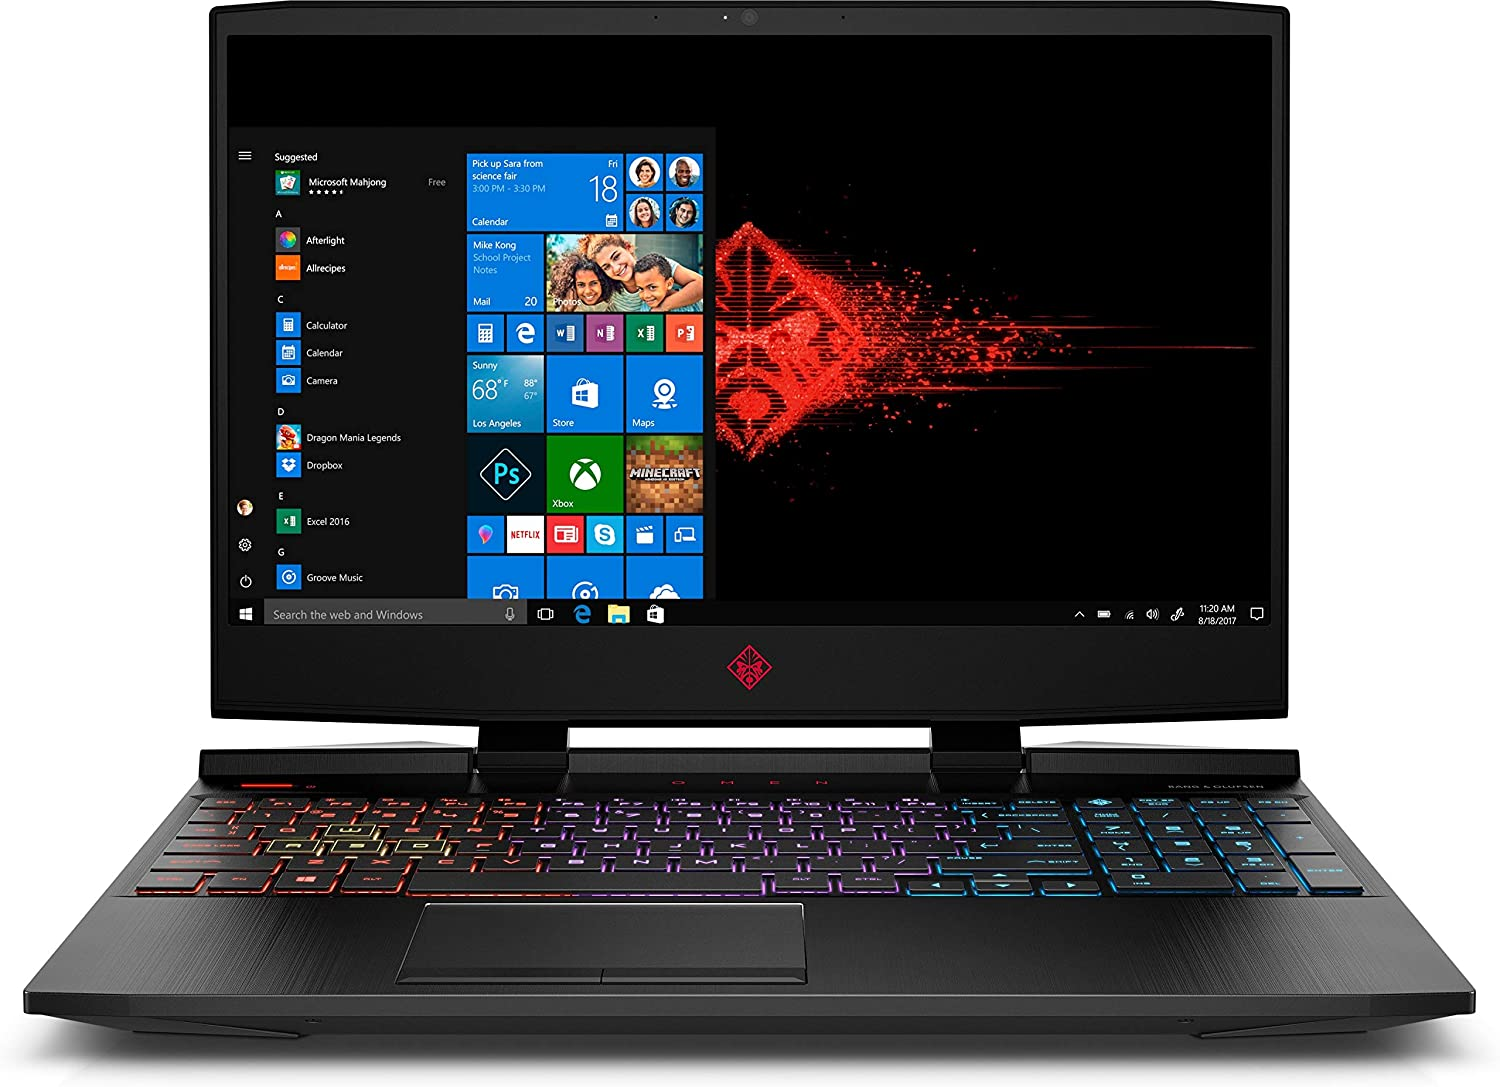 HP Omen Gaming Laptop Intel Core i7 8750H 1TB HD+256GB SSD NVIDIA GTX 1060 6GB